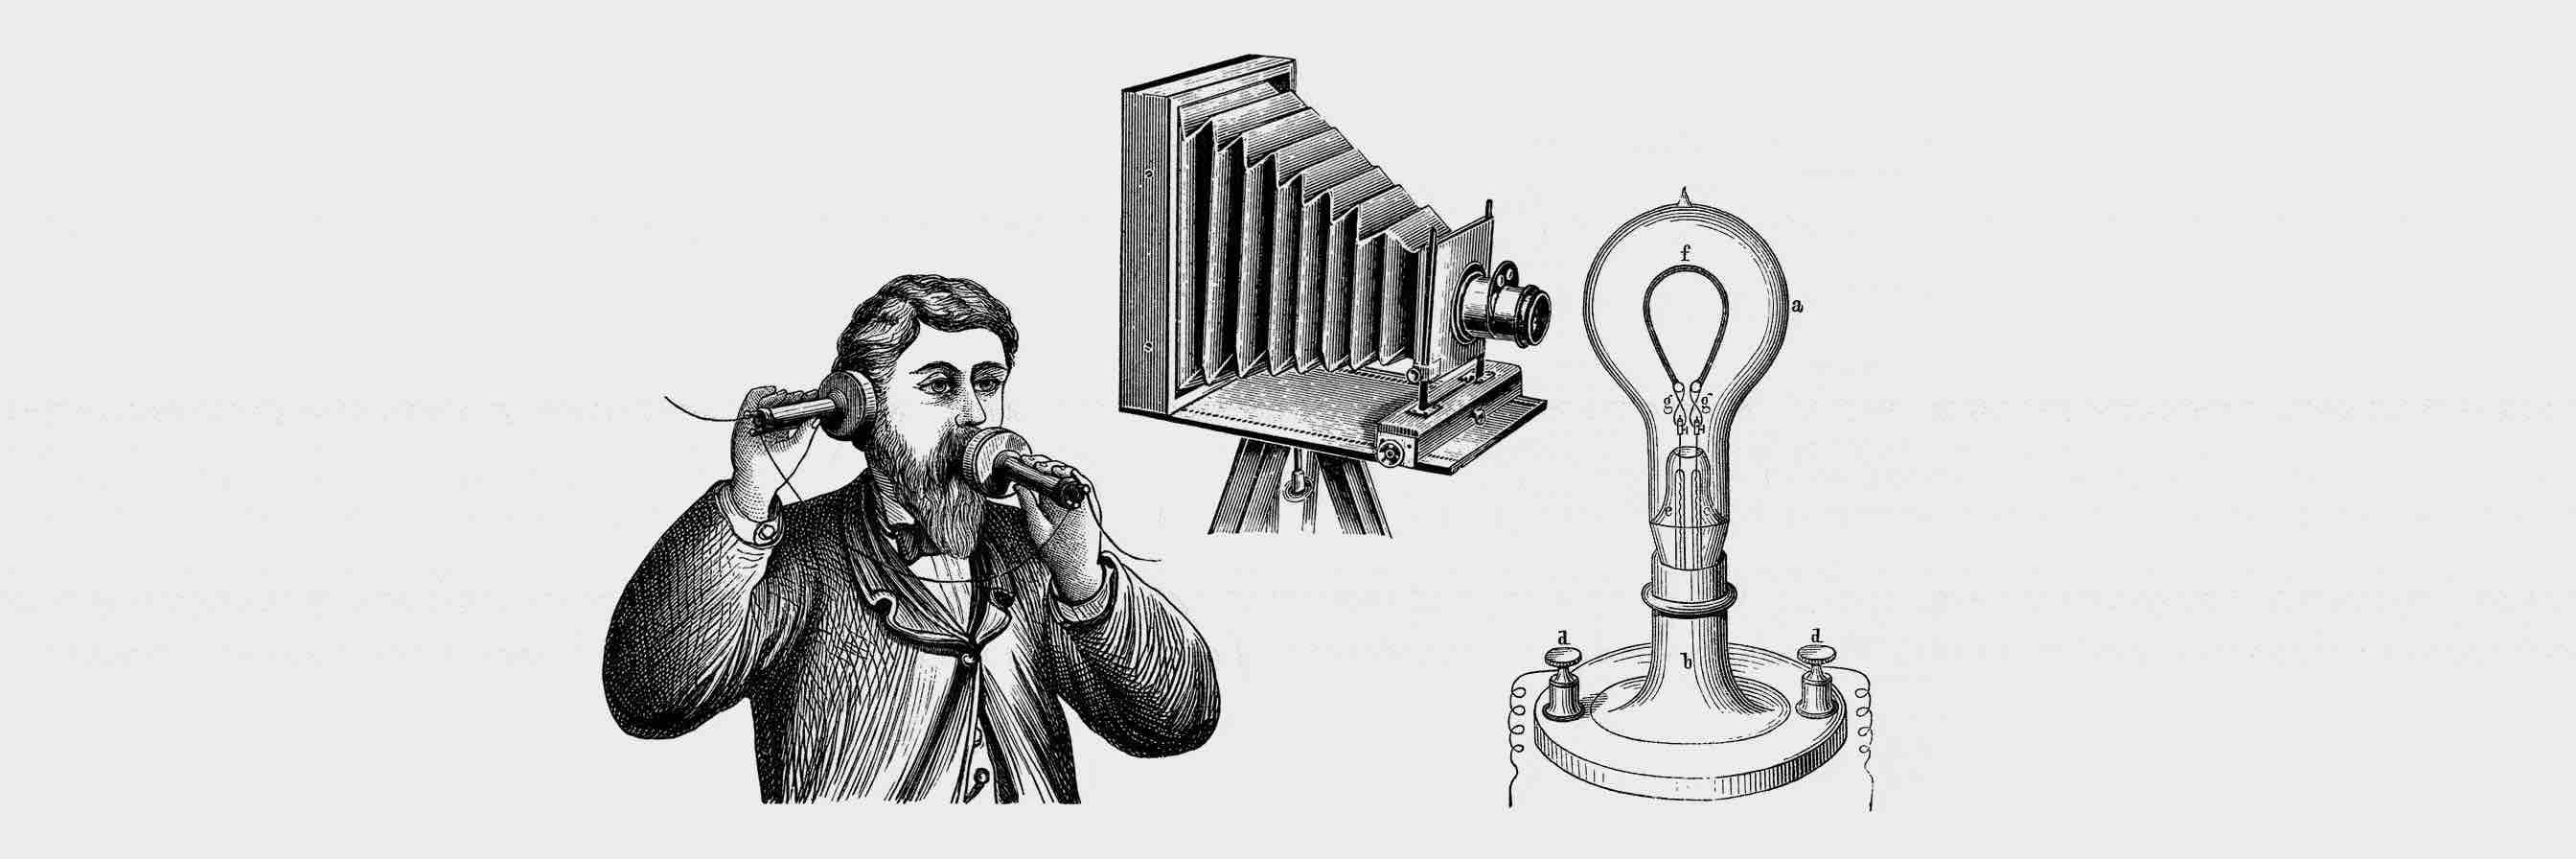 The inventions of the light bulb, camera and telephone